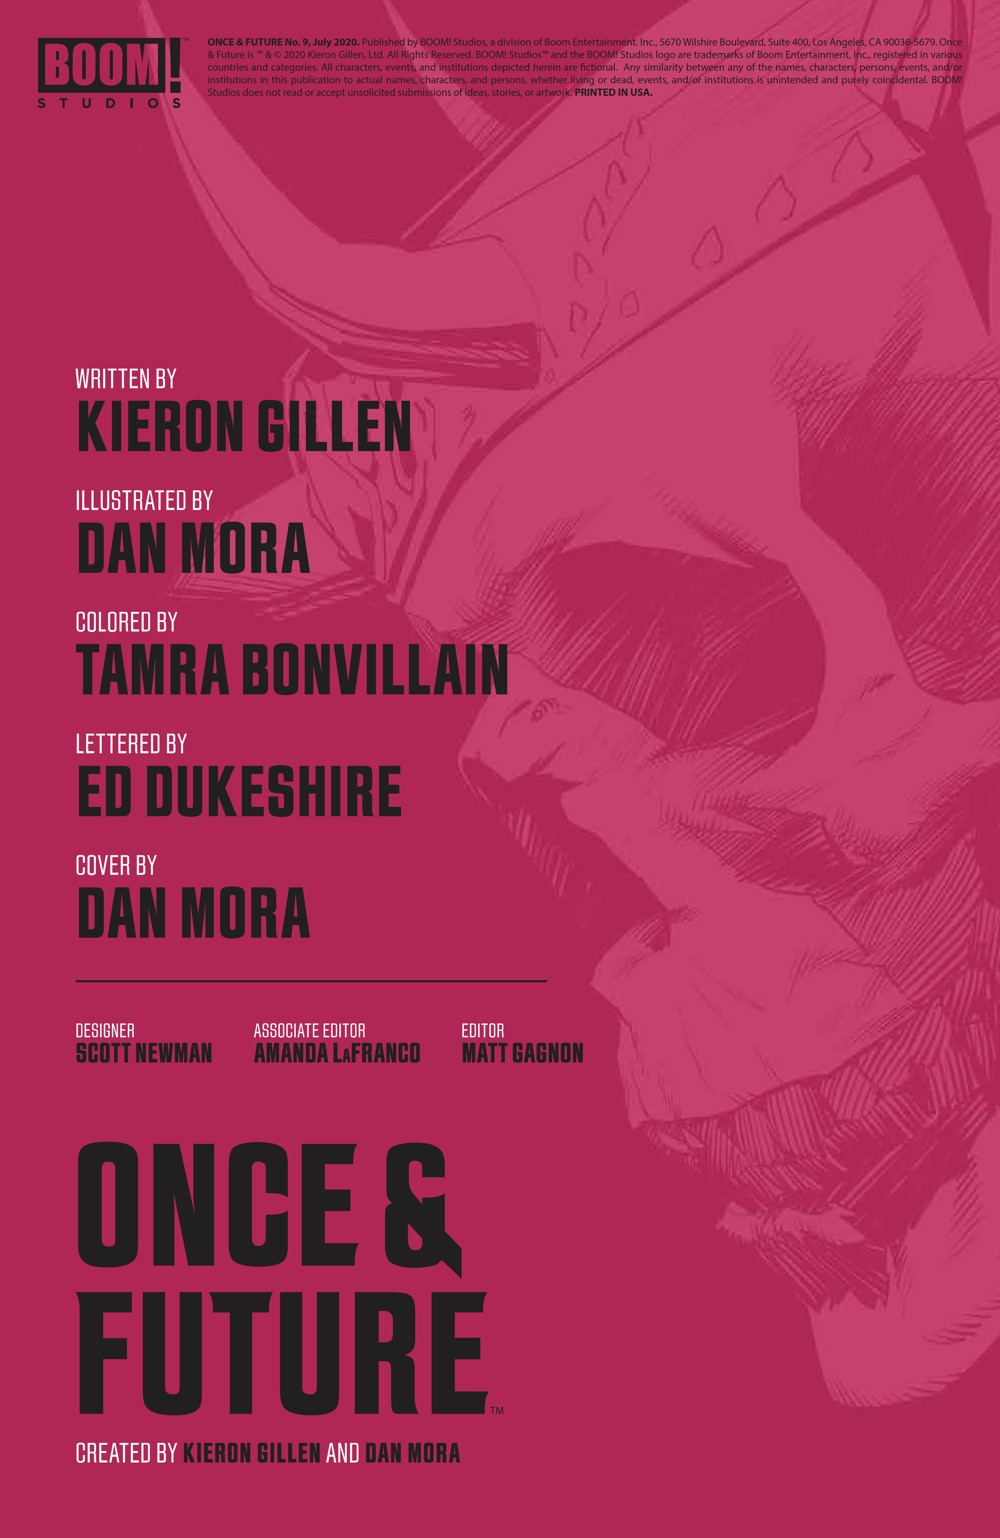 OnceFuture_009_PRESS_2 ComicList Previews: ONCE AND FUTURE #9